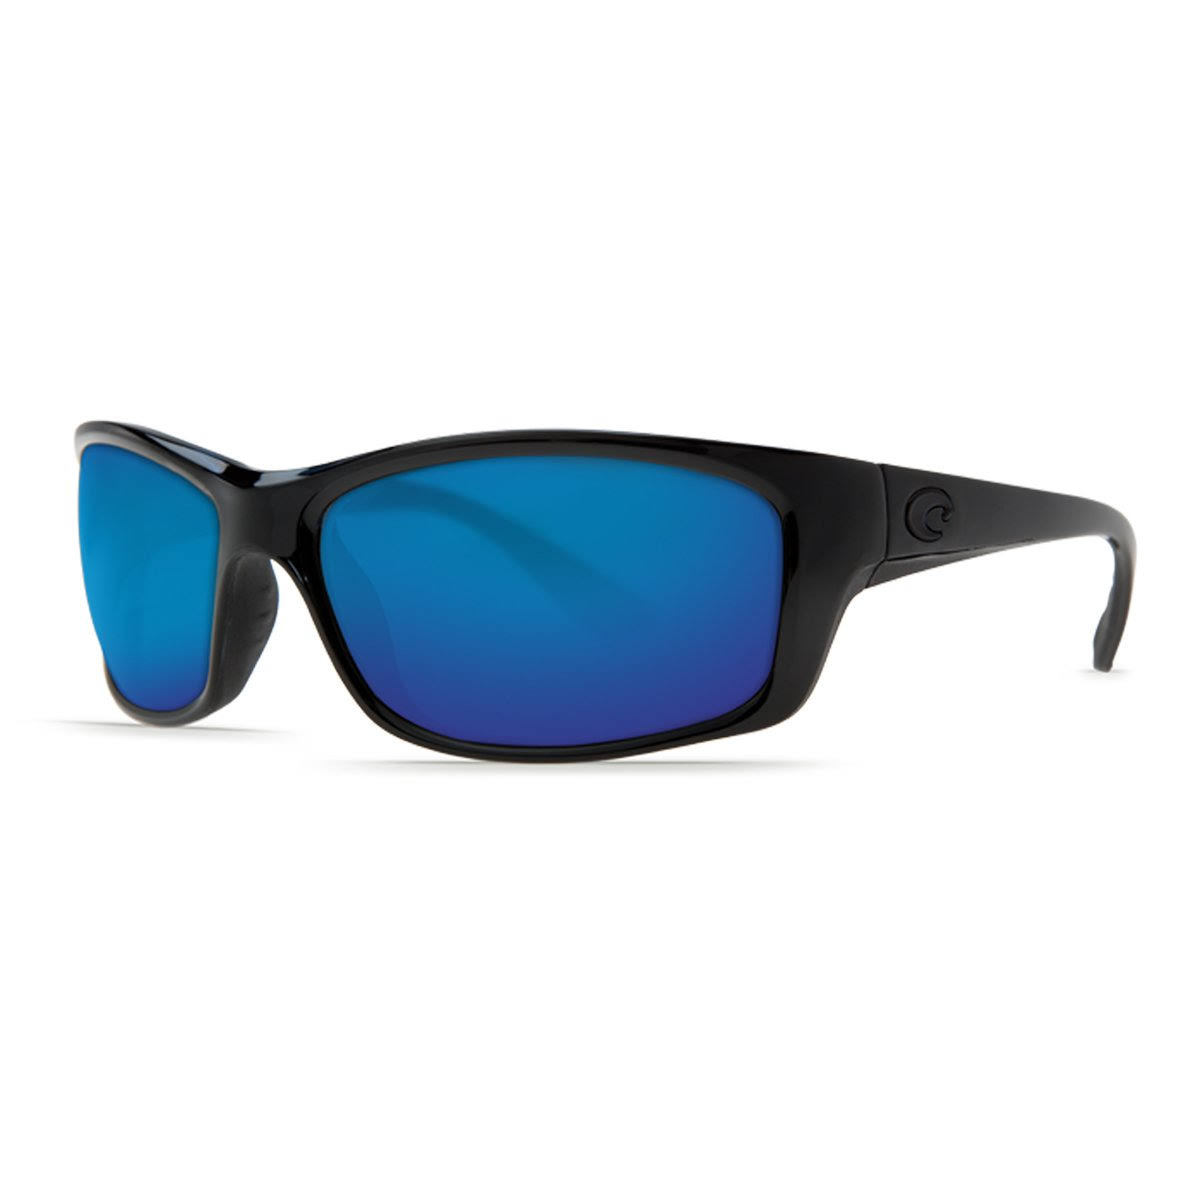 Costa Del Mar Jose Polarized Lens Sunglasses - Blackout and Blue